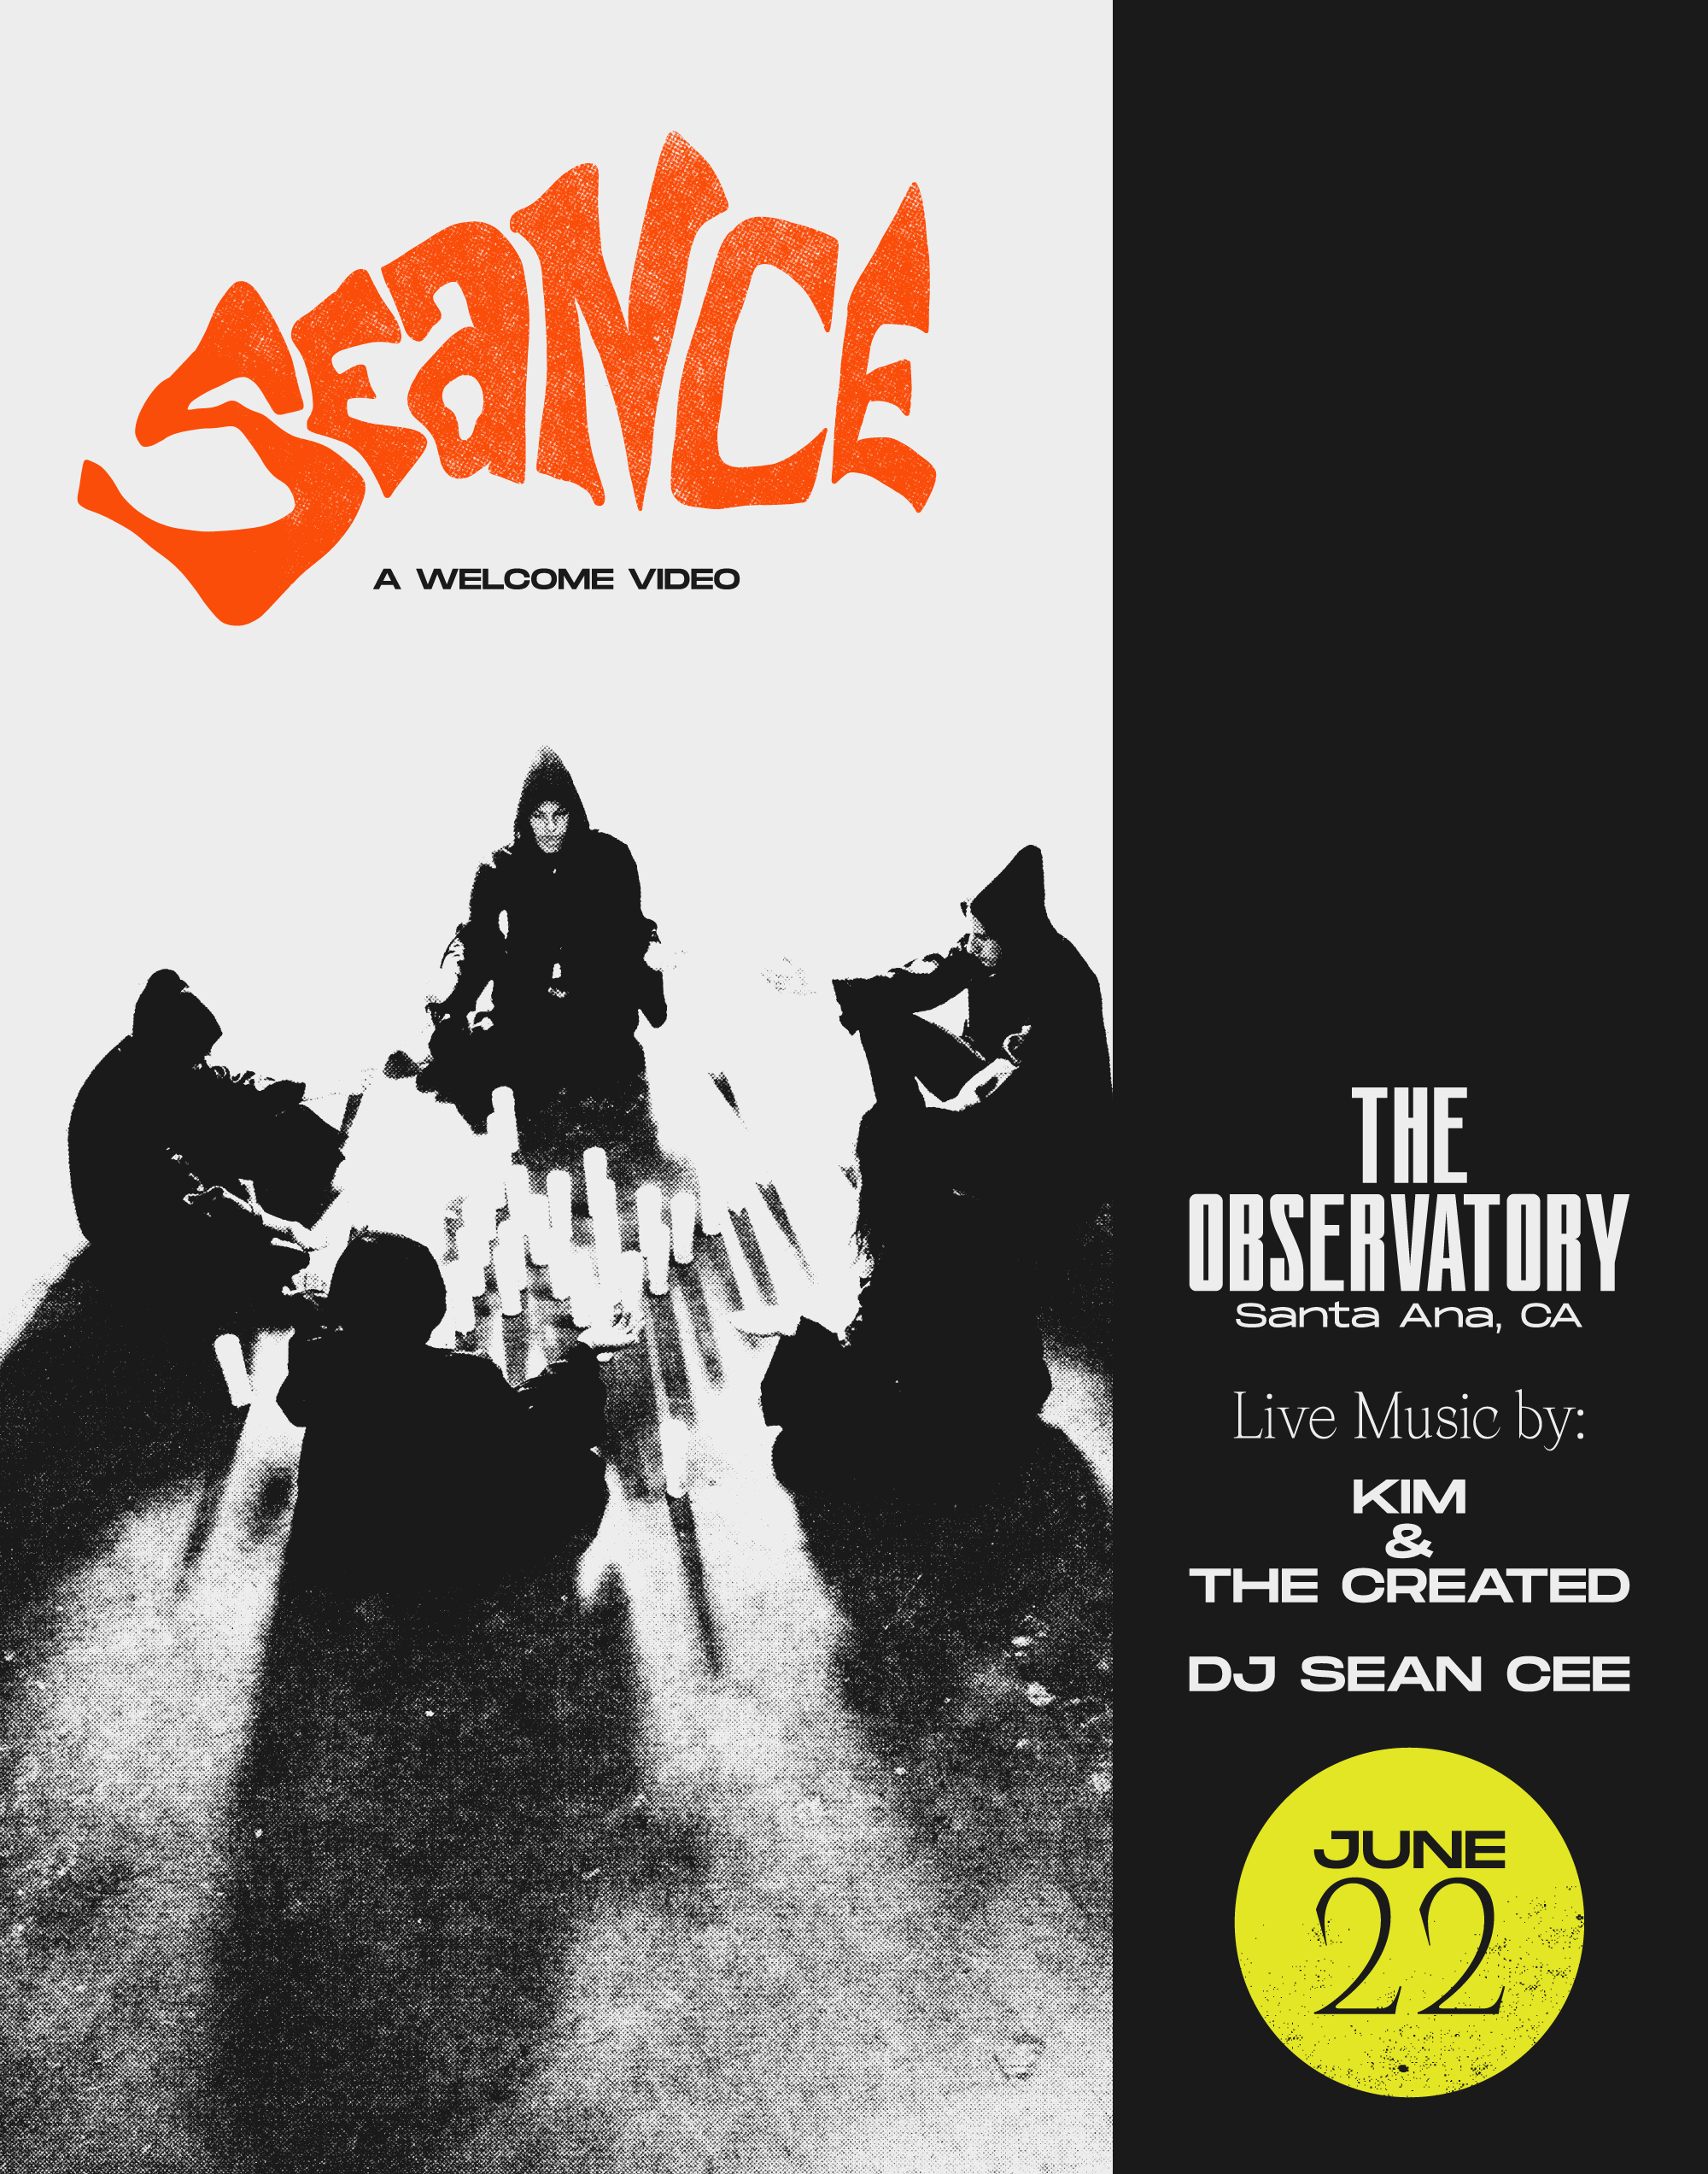 Seance-Poster-V2-Grey.png